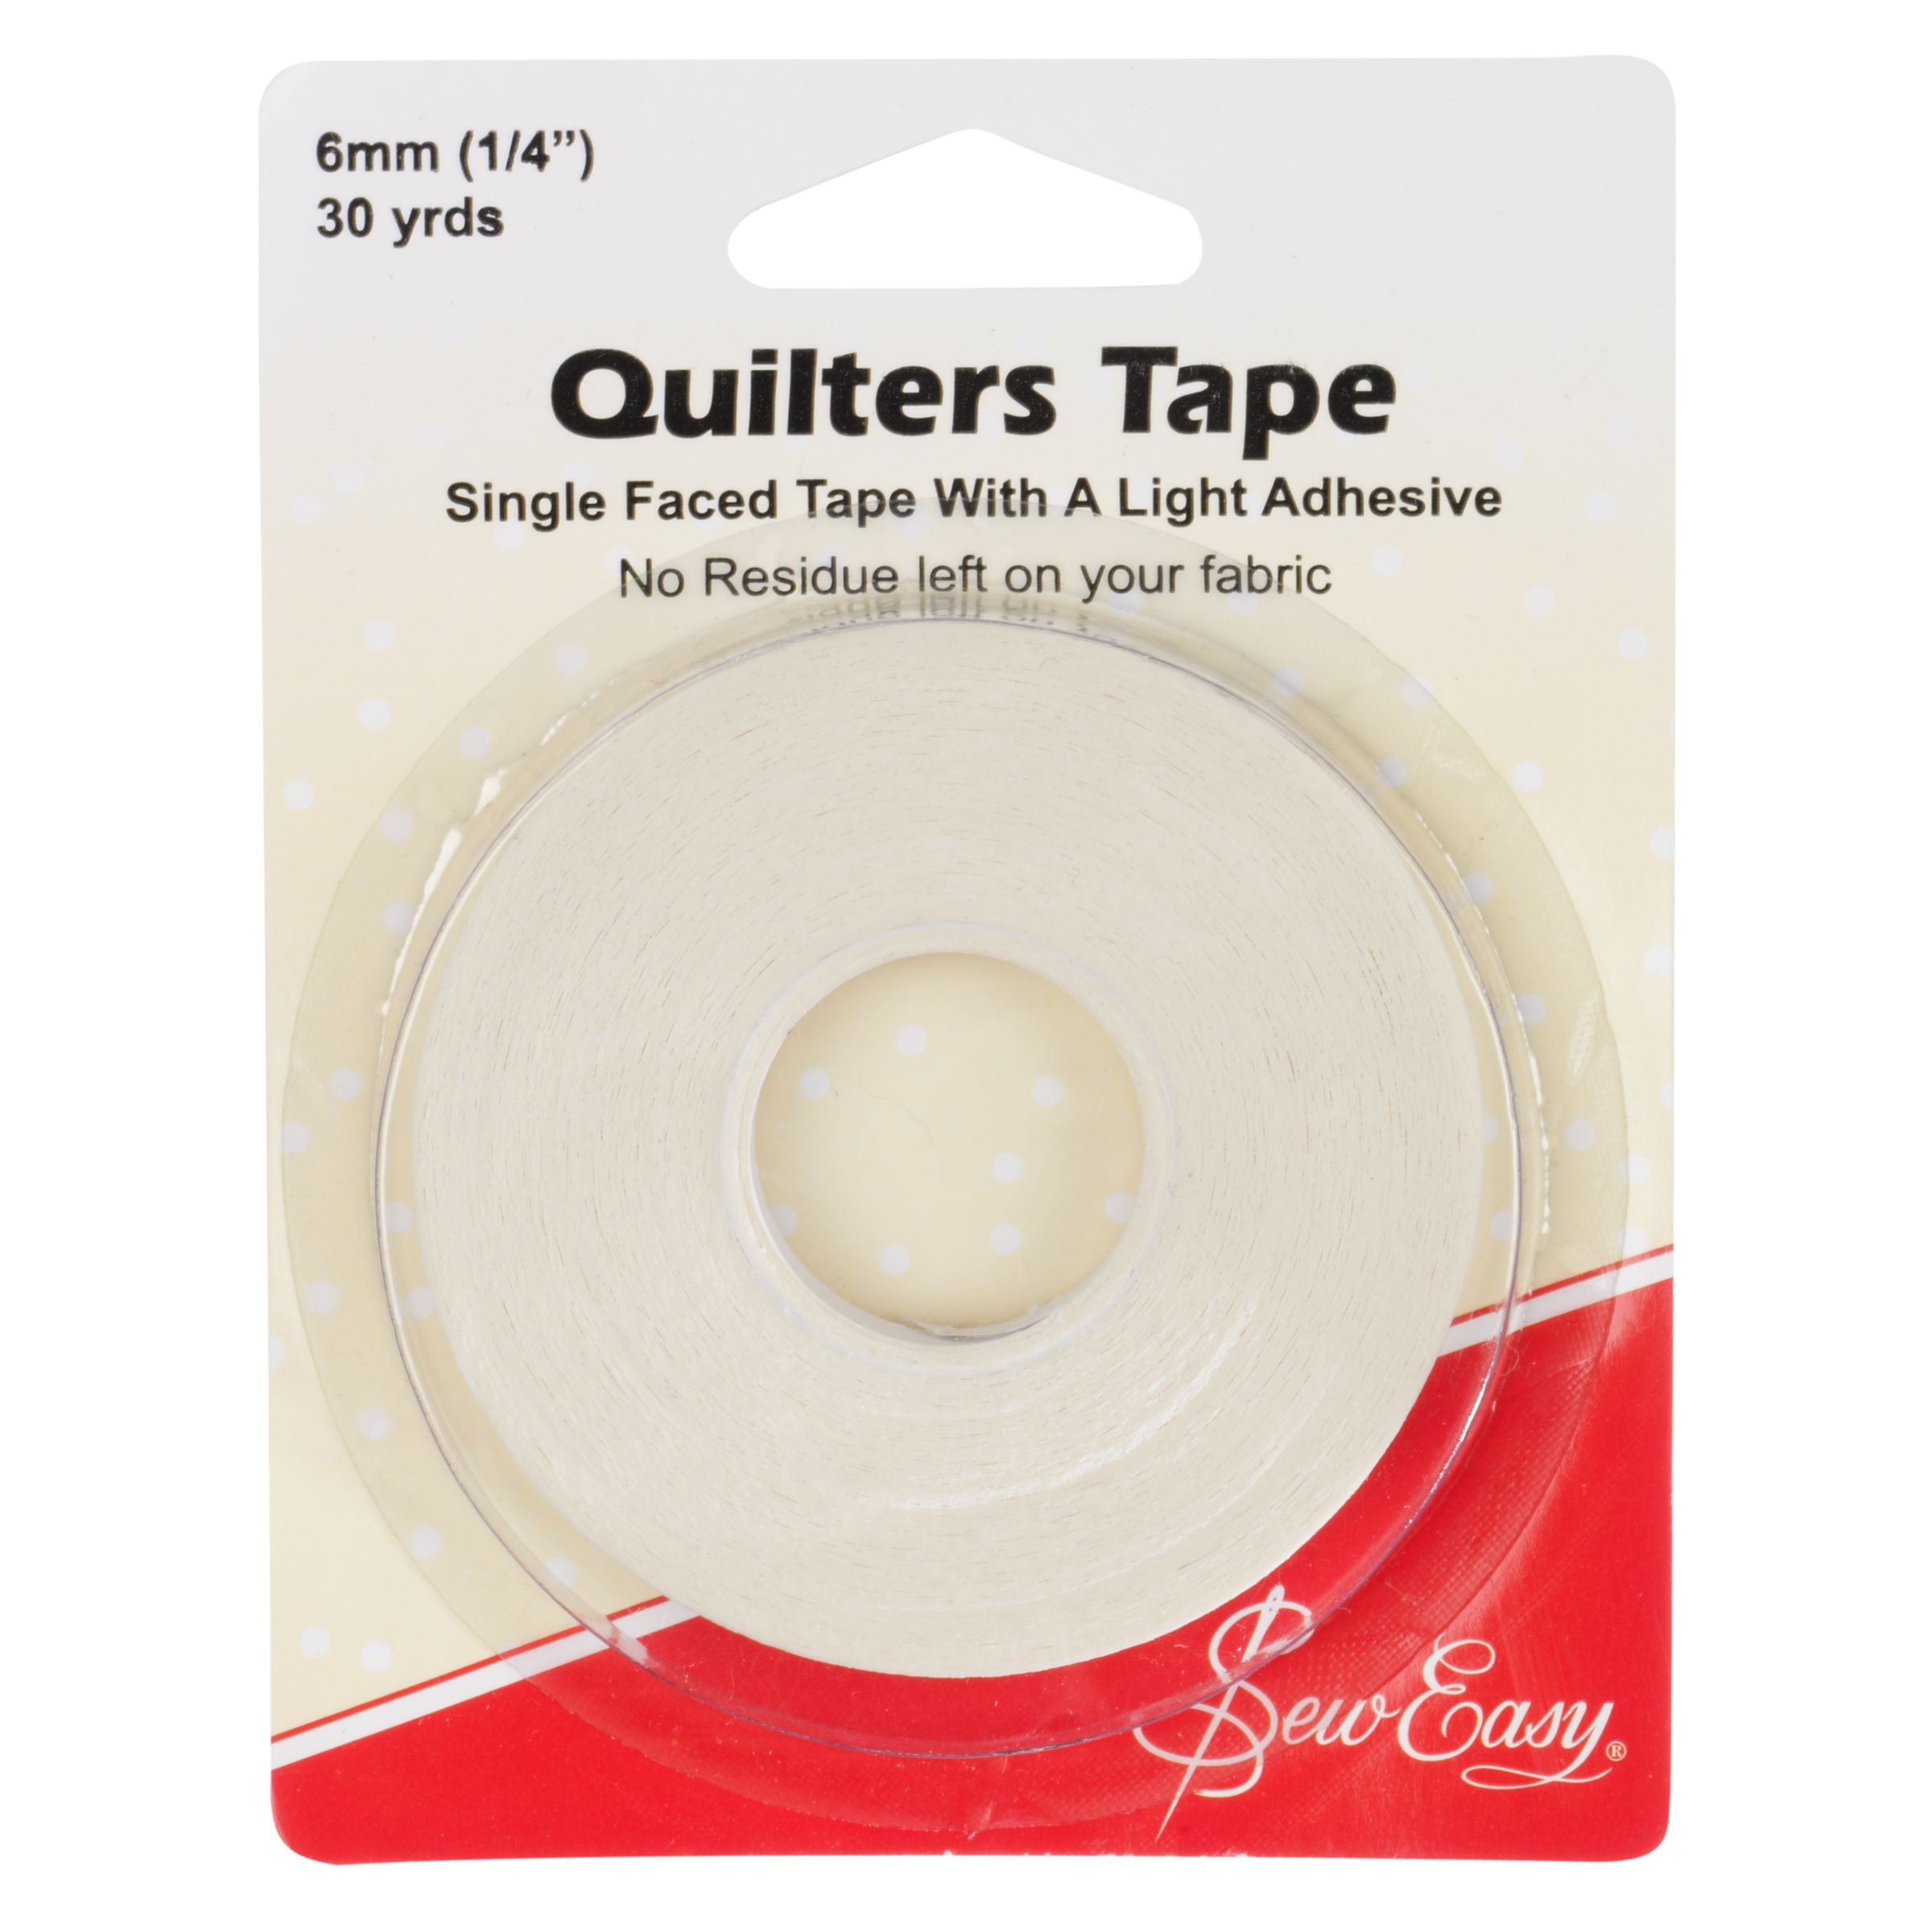 Sew Easy Sew Easy Quilters' Tape